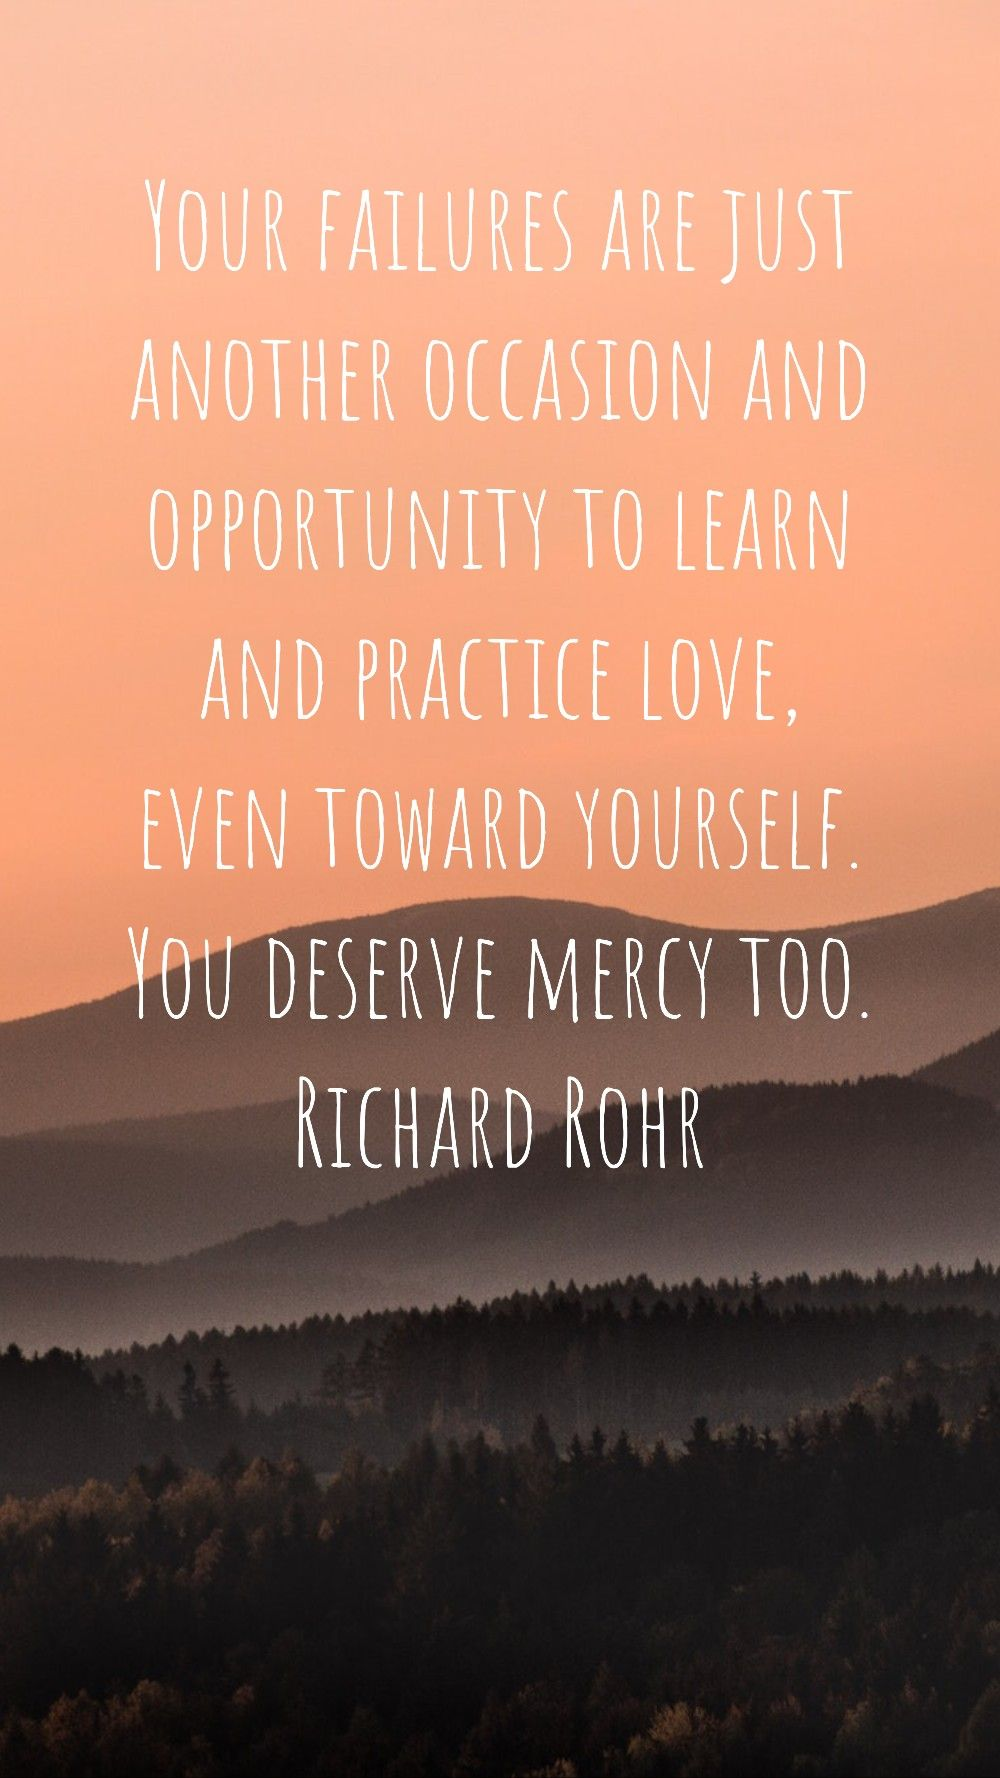 Pin on Richard Rohr